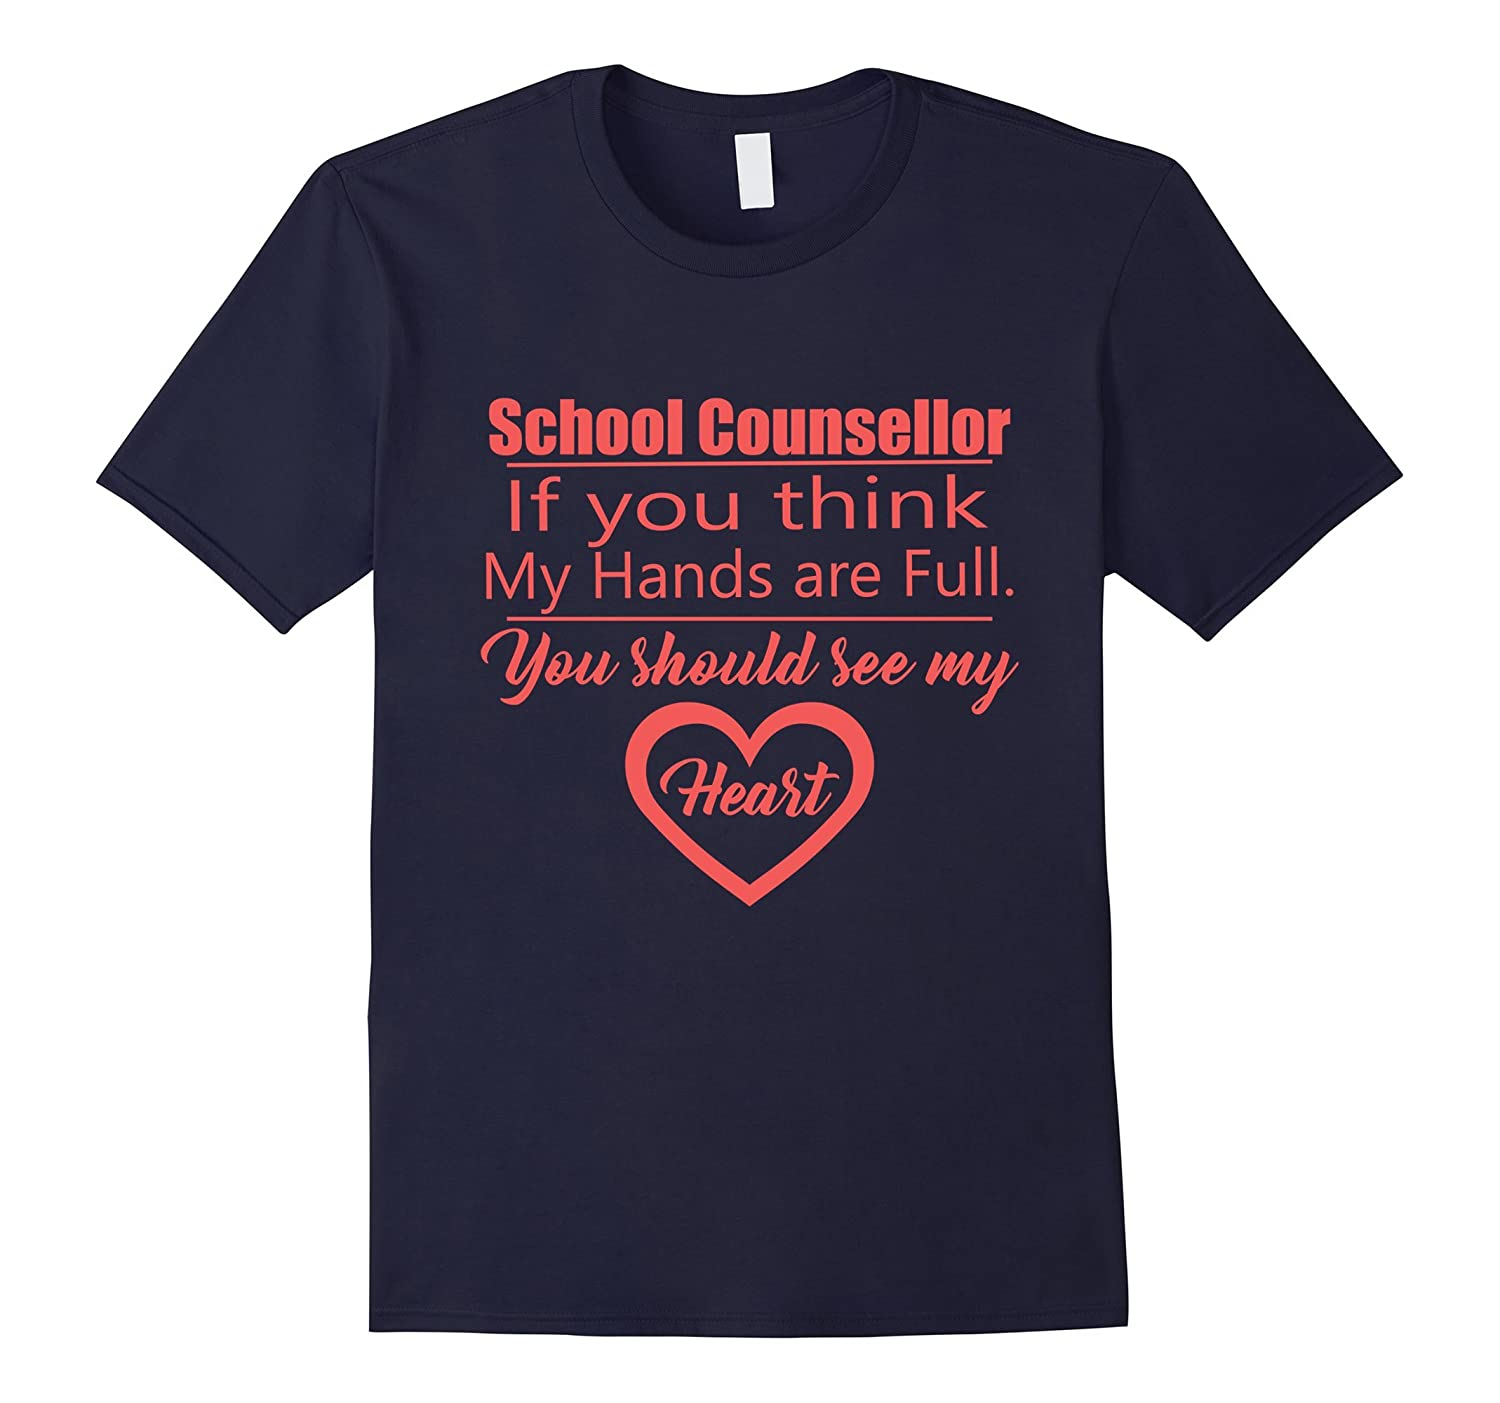 Cute School Counsellor Funny graphic tee shirt-TD